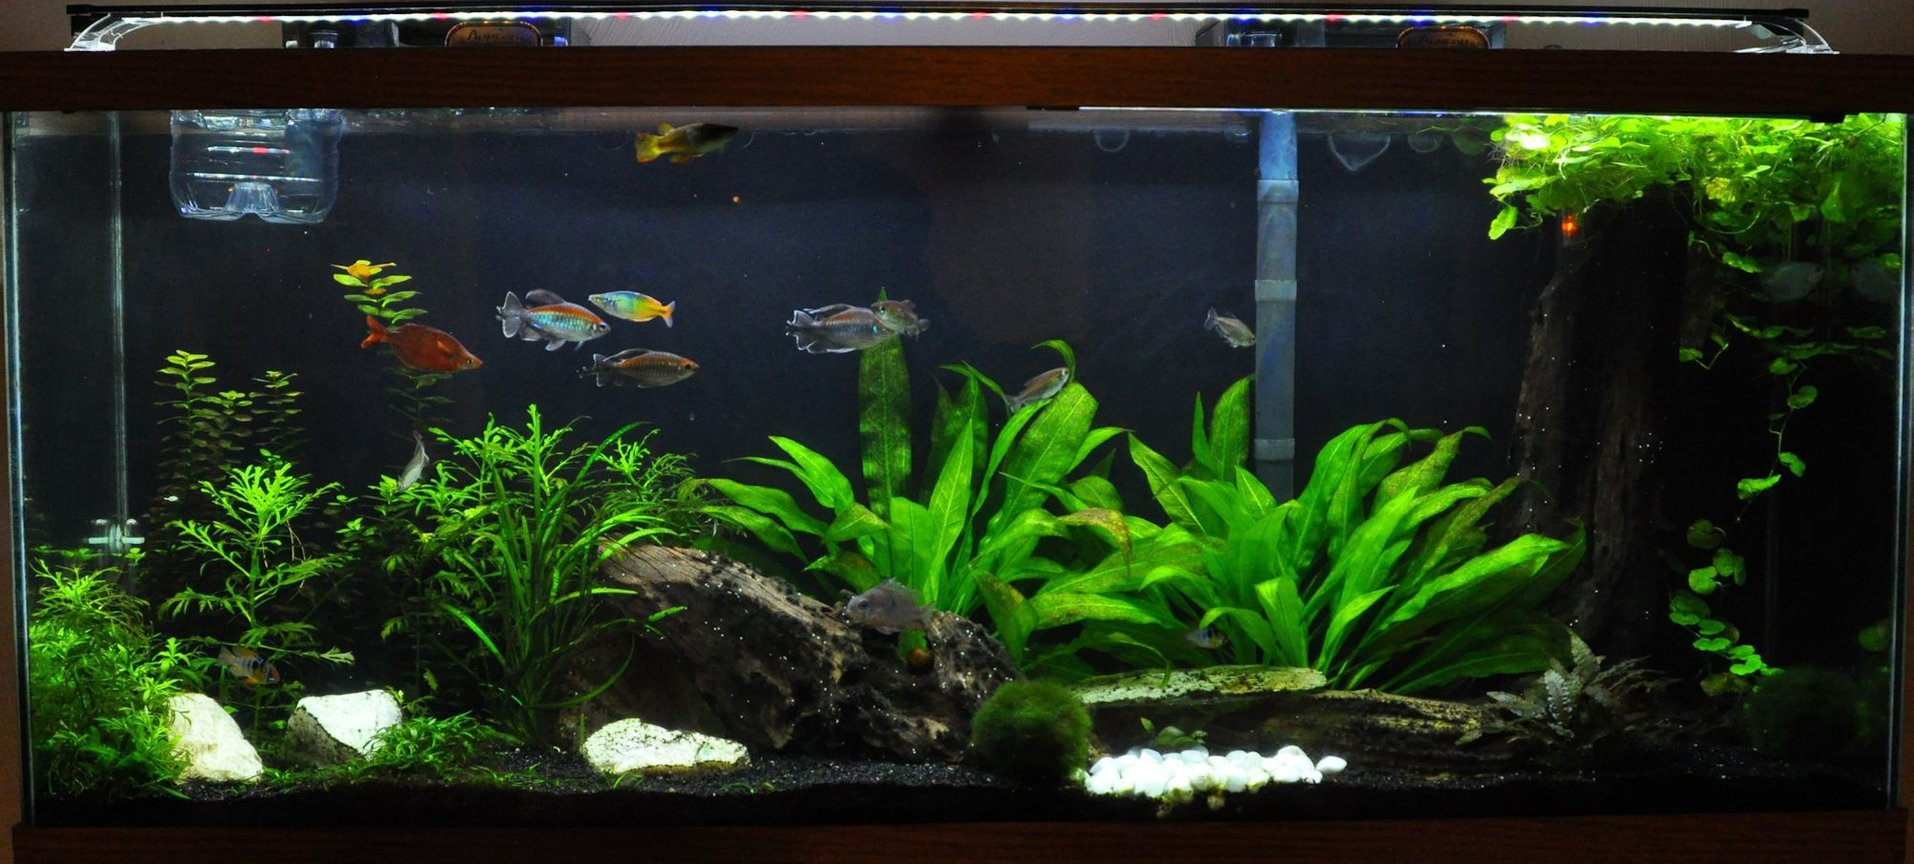 55 gallons planted tank (mostly live plants and fish) - My Work In Progress